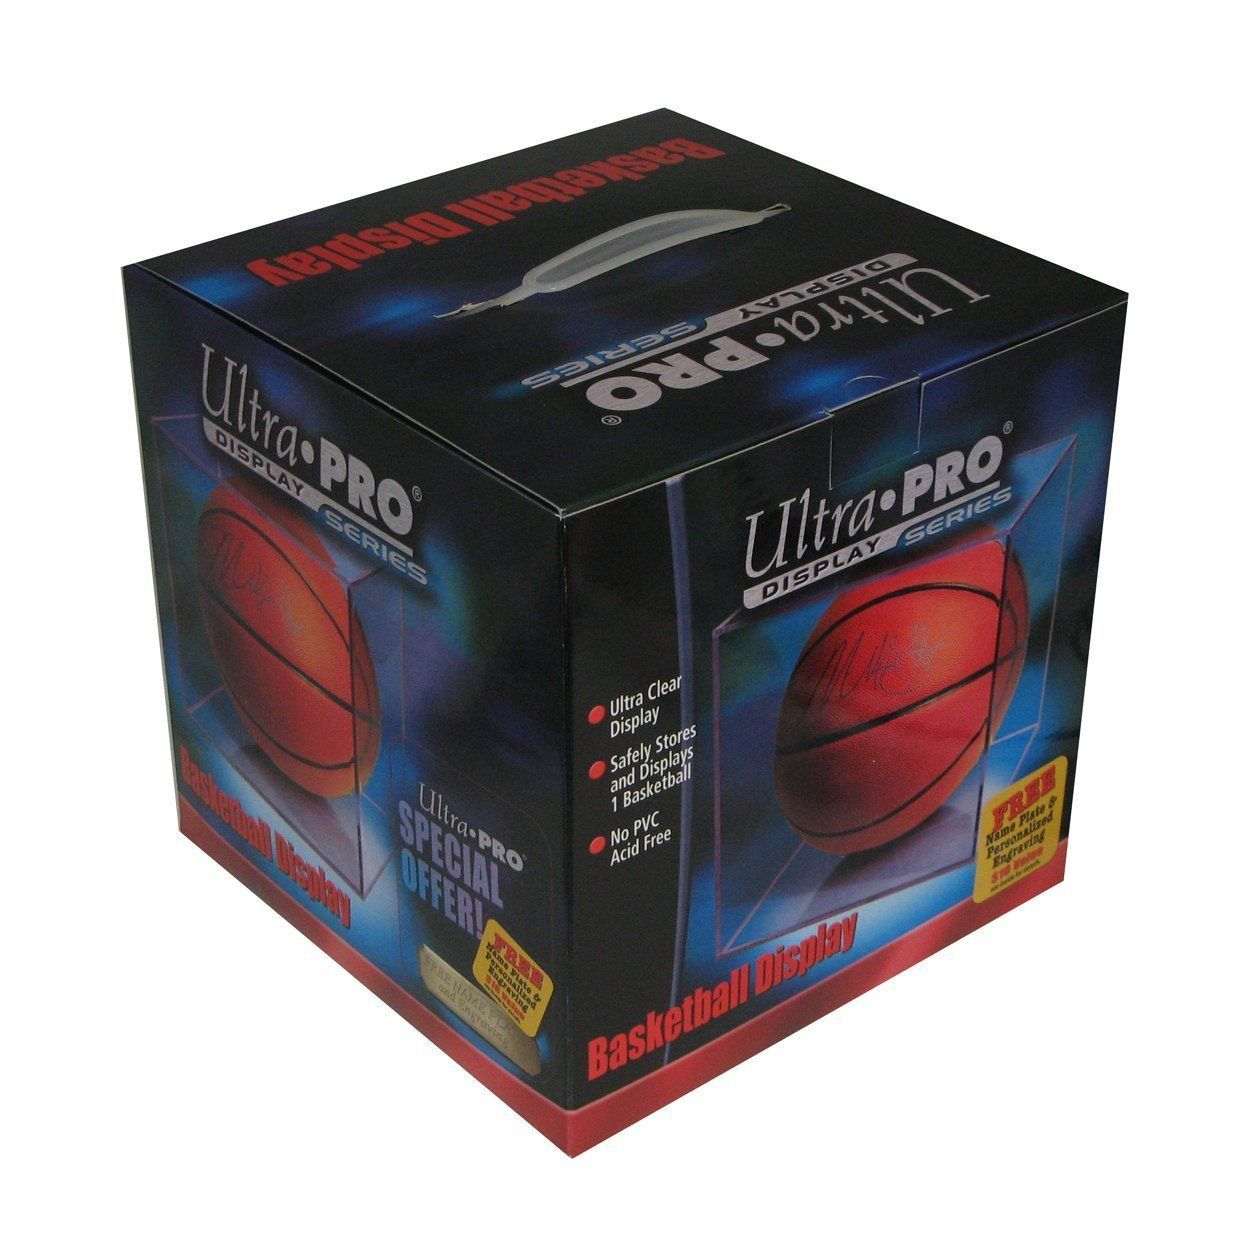 REGULATION BASKETBALL ULTRA CLEAR  DISPLAY CASE HOLDER by Ultra Pro